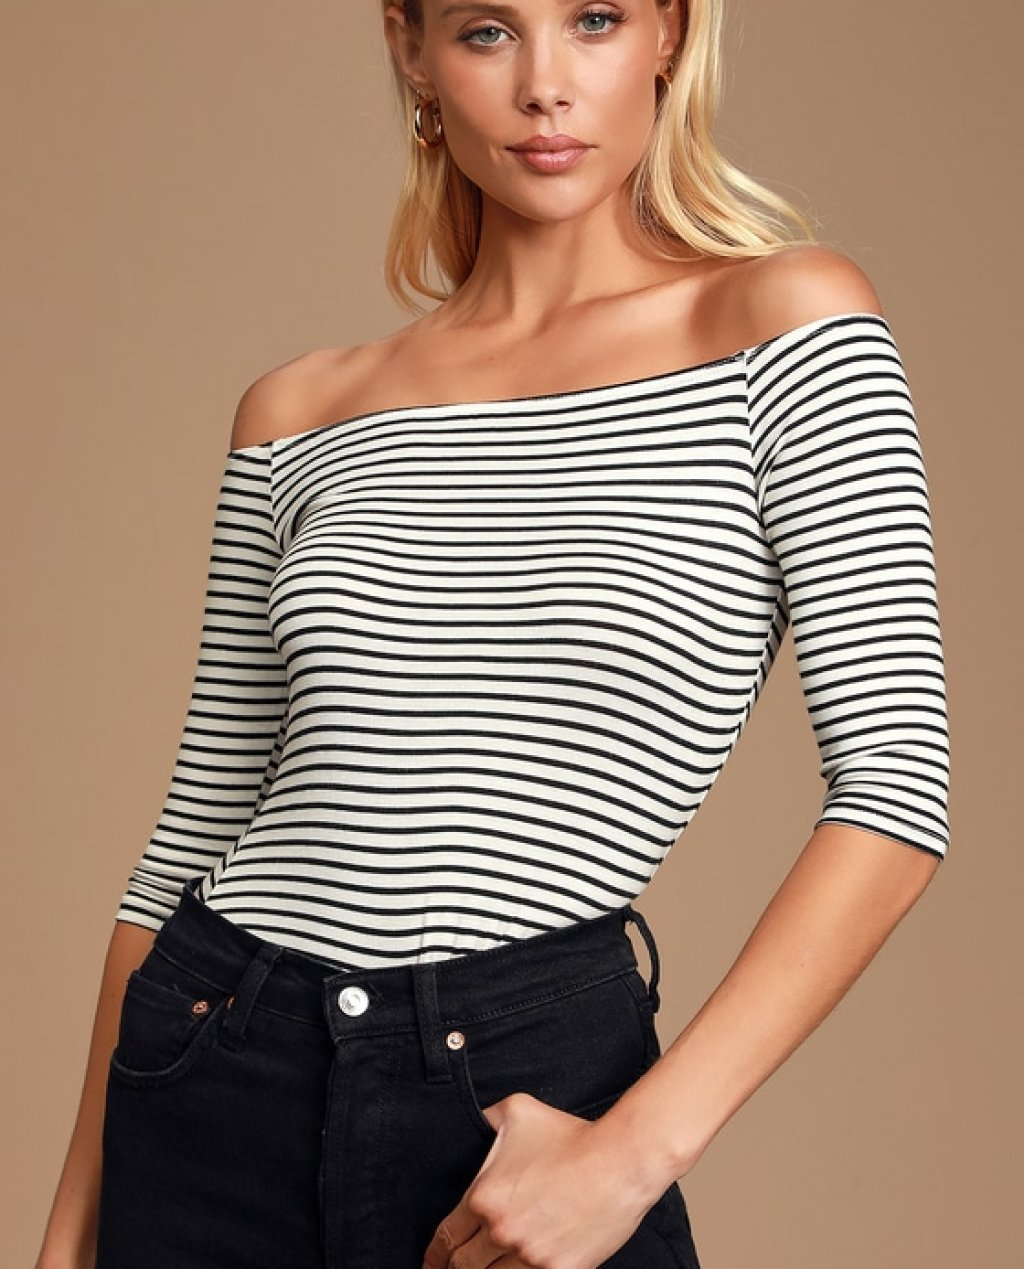 Upstage White and Black Striped Off-the-Shoulder Top